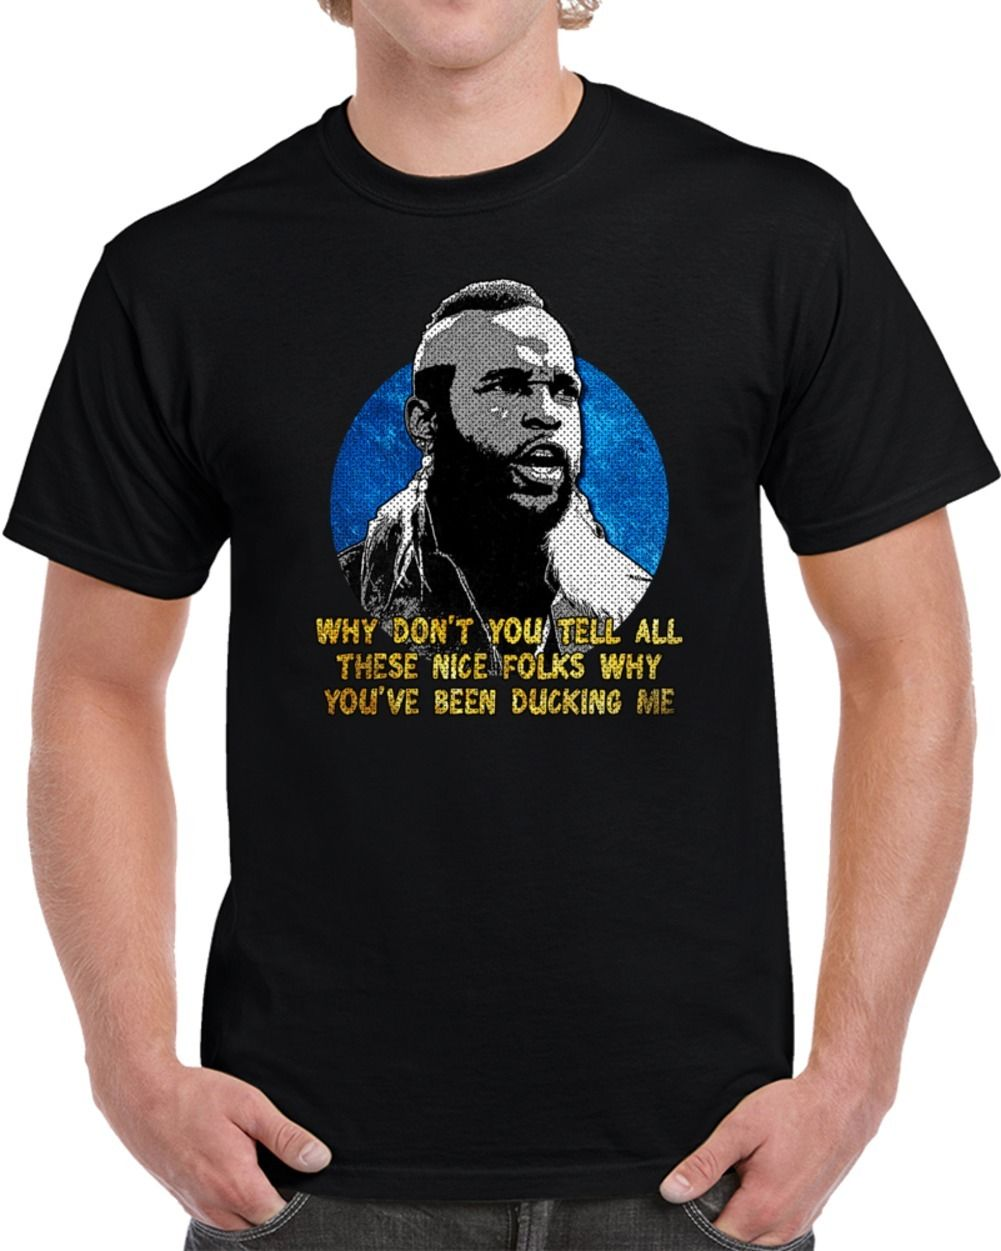 Clubber Lang Rocky III Quote Ducking Me Parody Movie T Shirt S M L XL 2XL 3XL Graphic Tees Boyfriend Gift 2019 Men T Shirt image